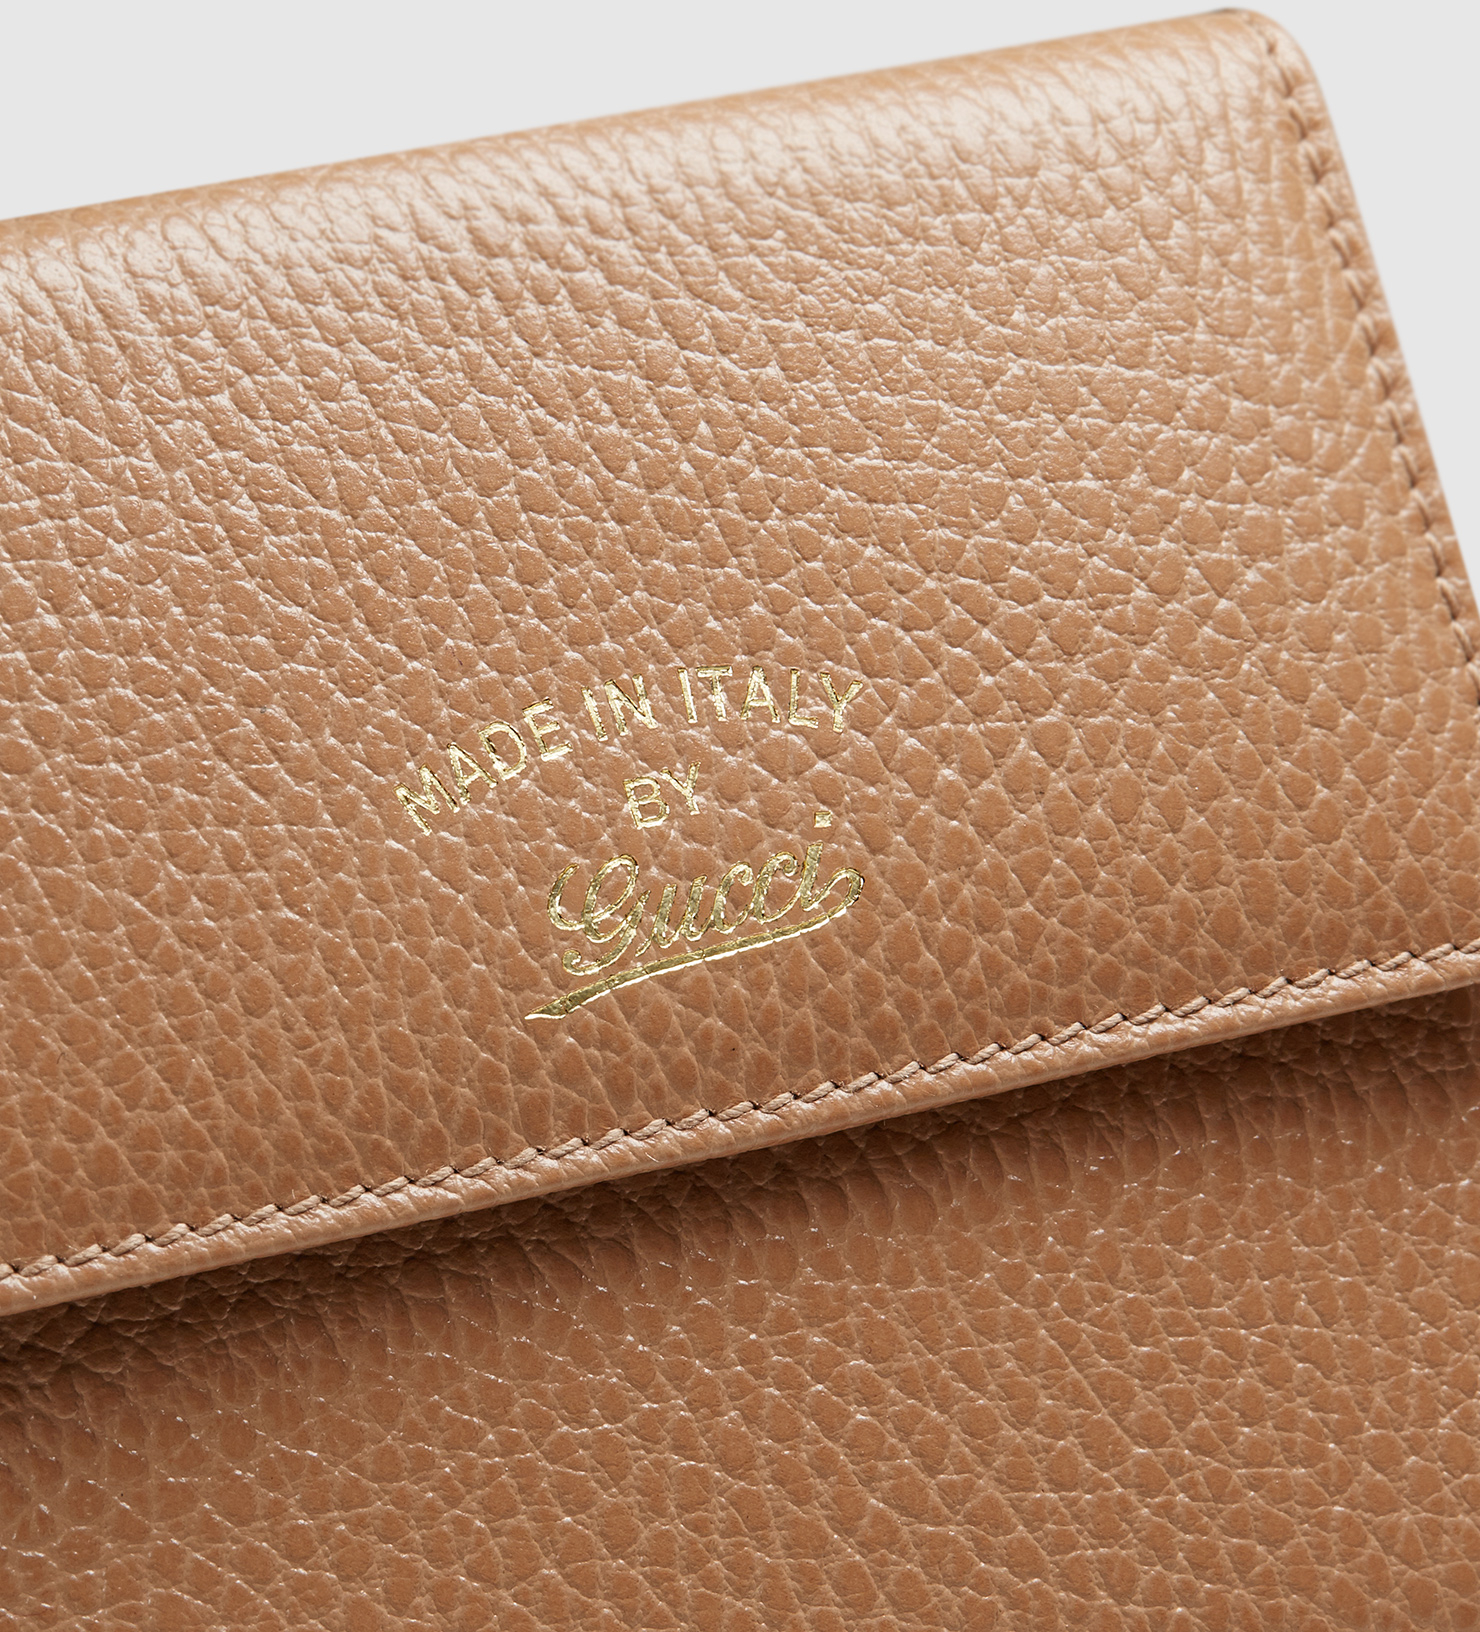 50bdfce07c4 Lyst - Gucci Swing Leather French Flap Wallet in Brown